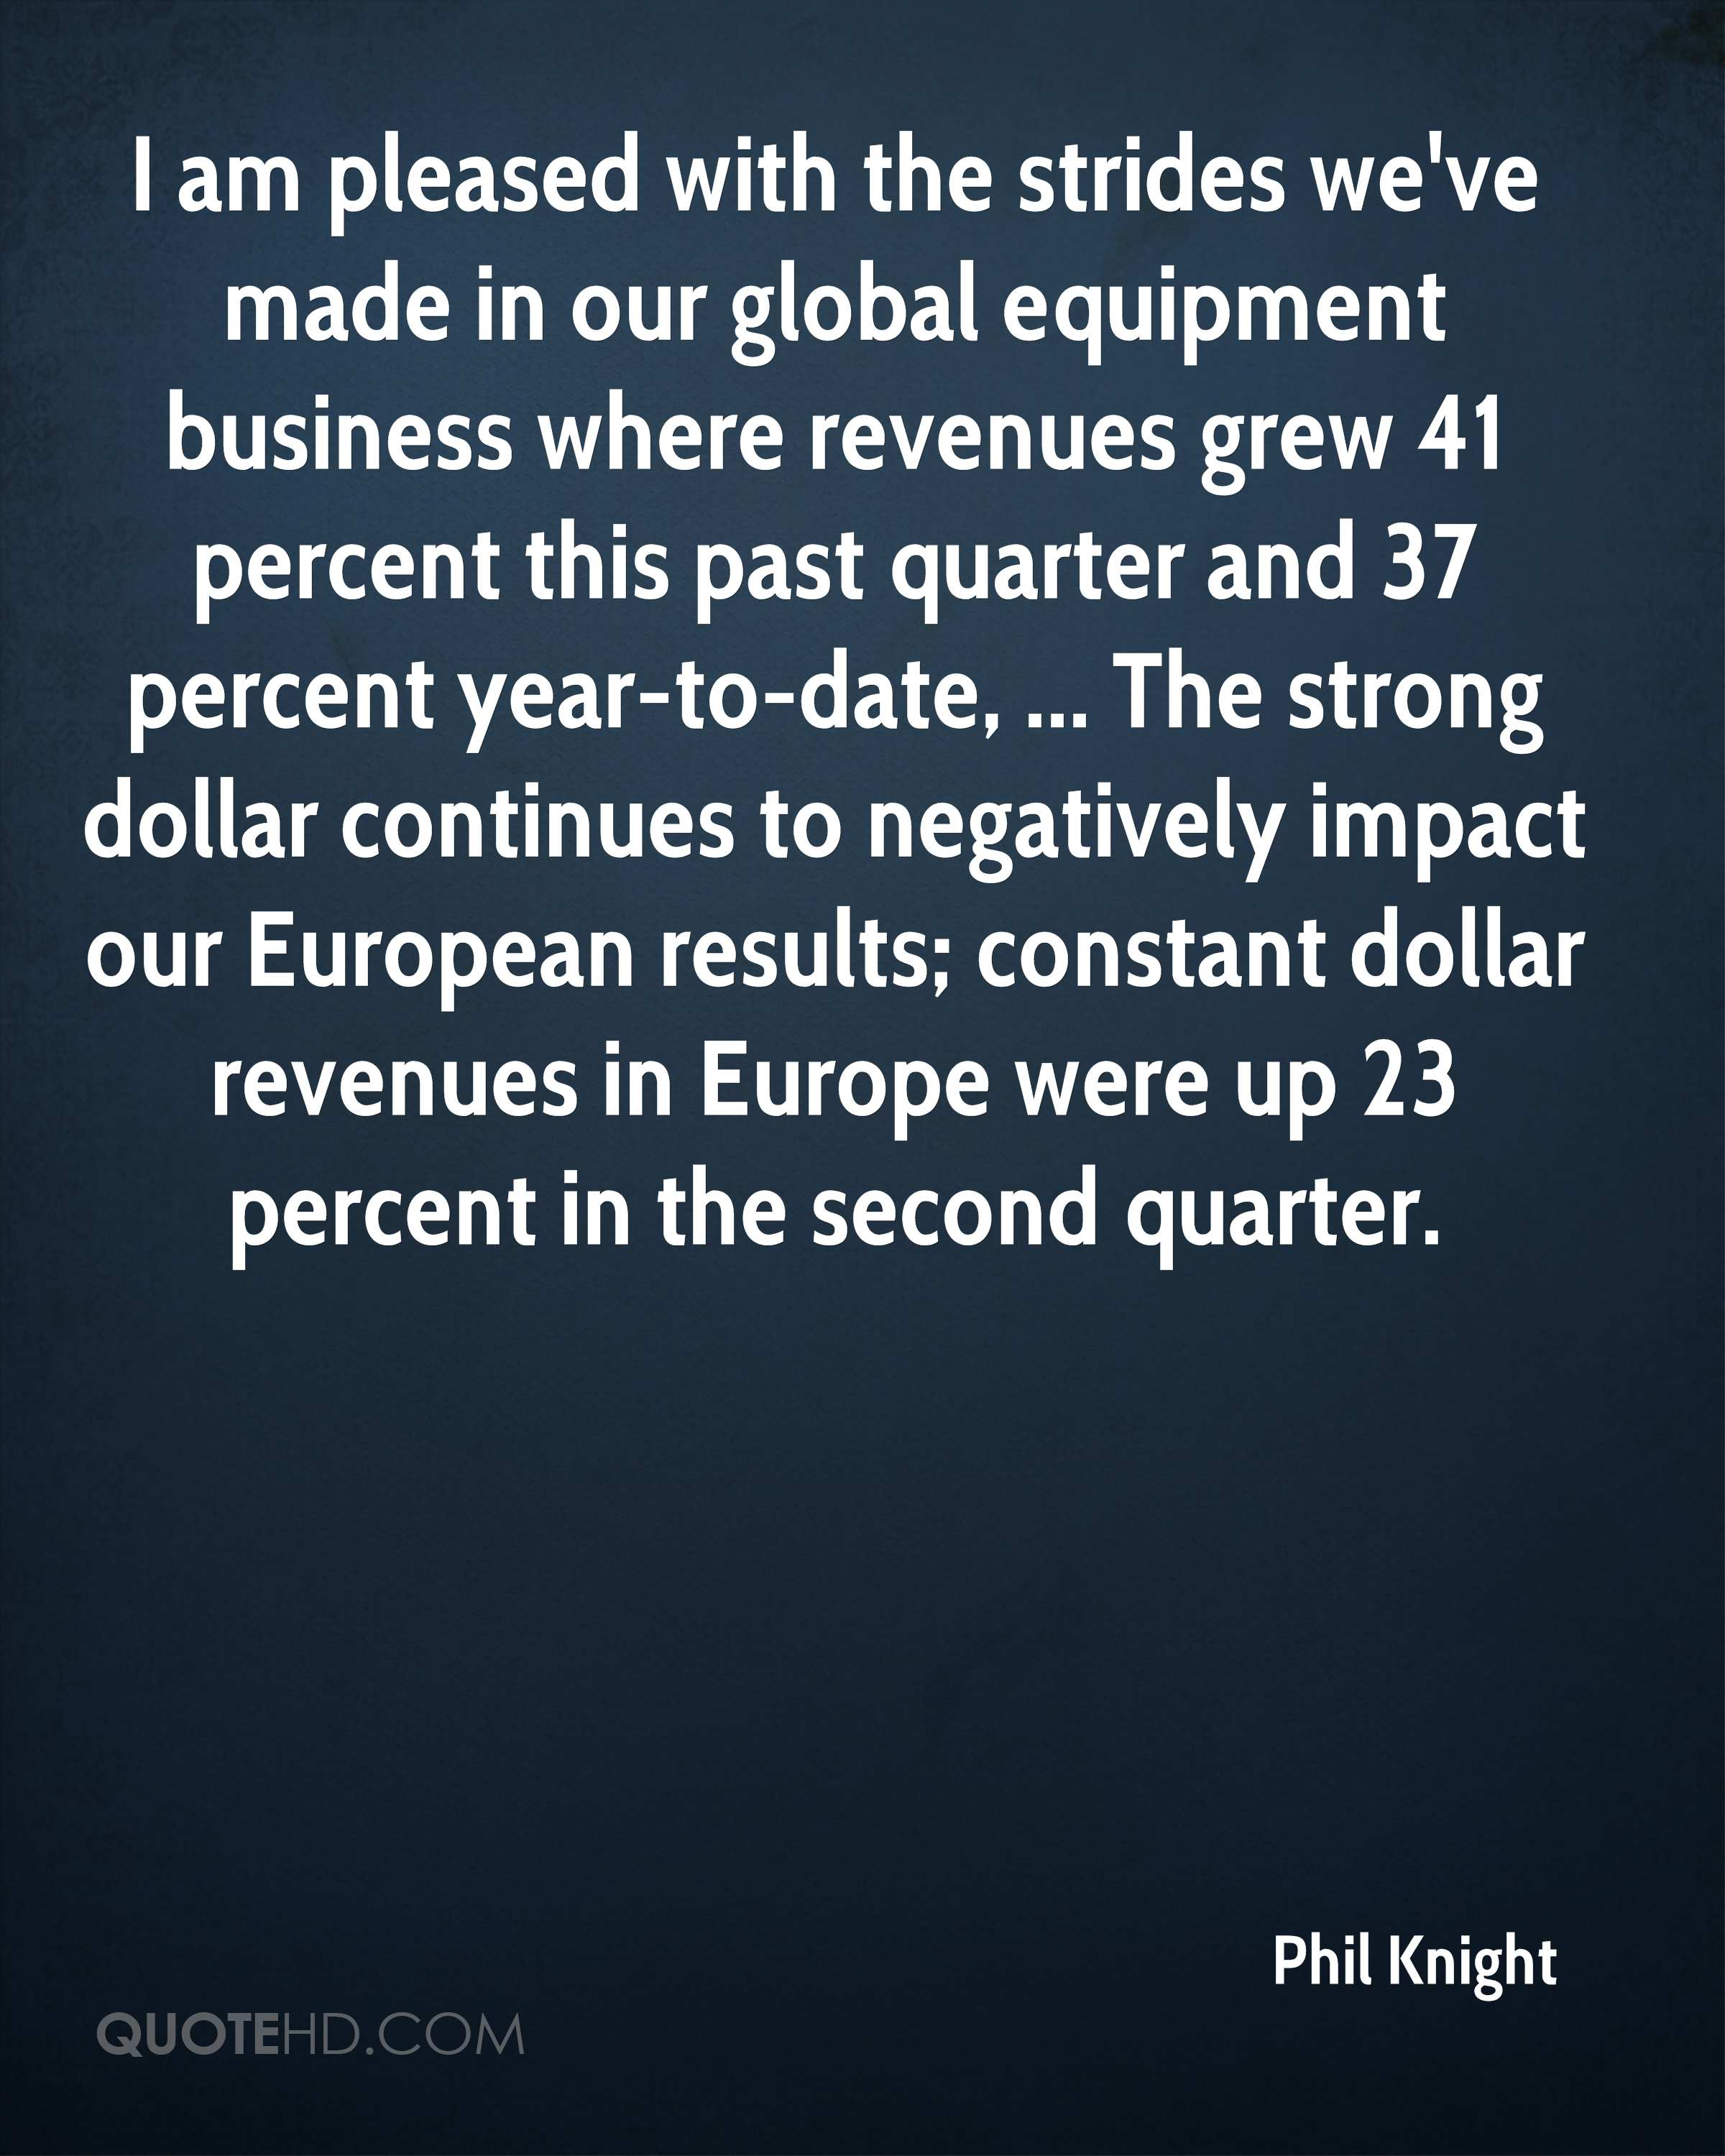 I am pleased with the strides we've made in our global equipment business where revenues grew 41 percent this past quarter and 37 percent year-to-date, ... The strong dollar continues to negatively impact our European results; constant dollar revenues in Europe were up 23 percent in the second quarter.